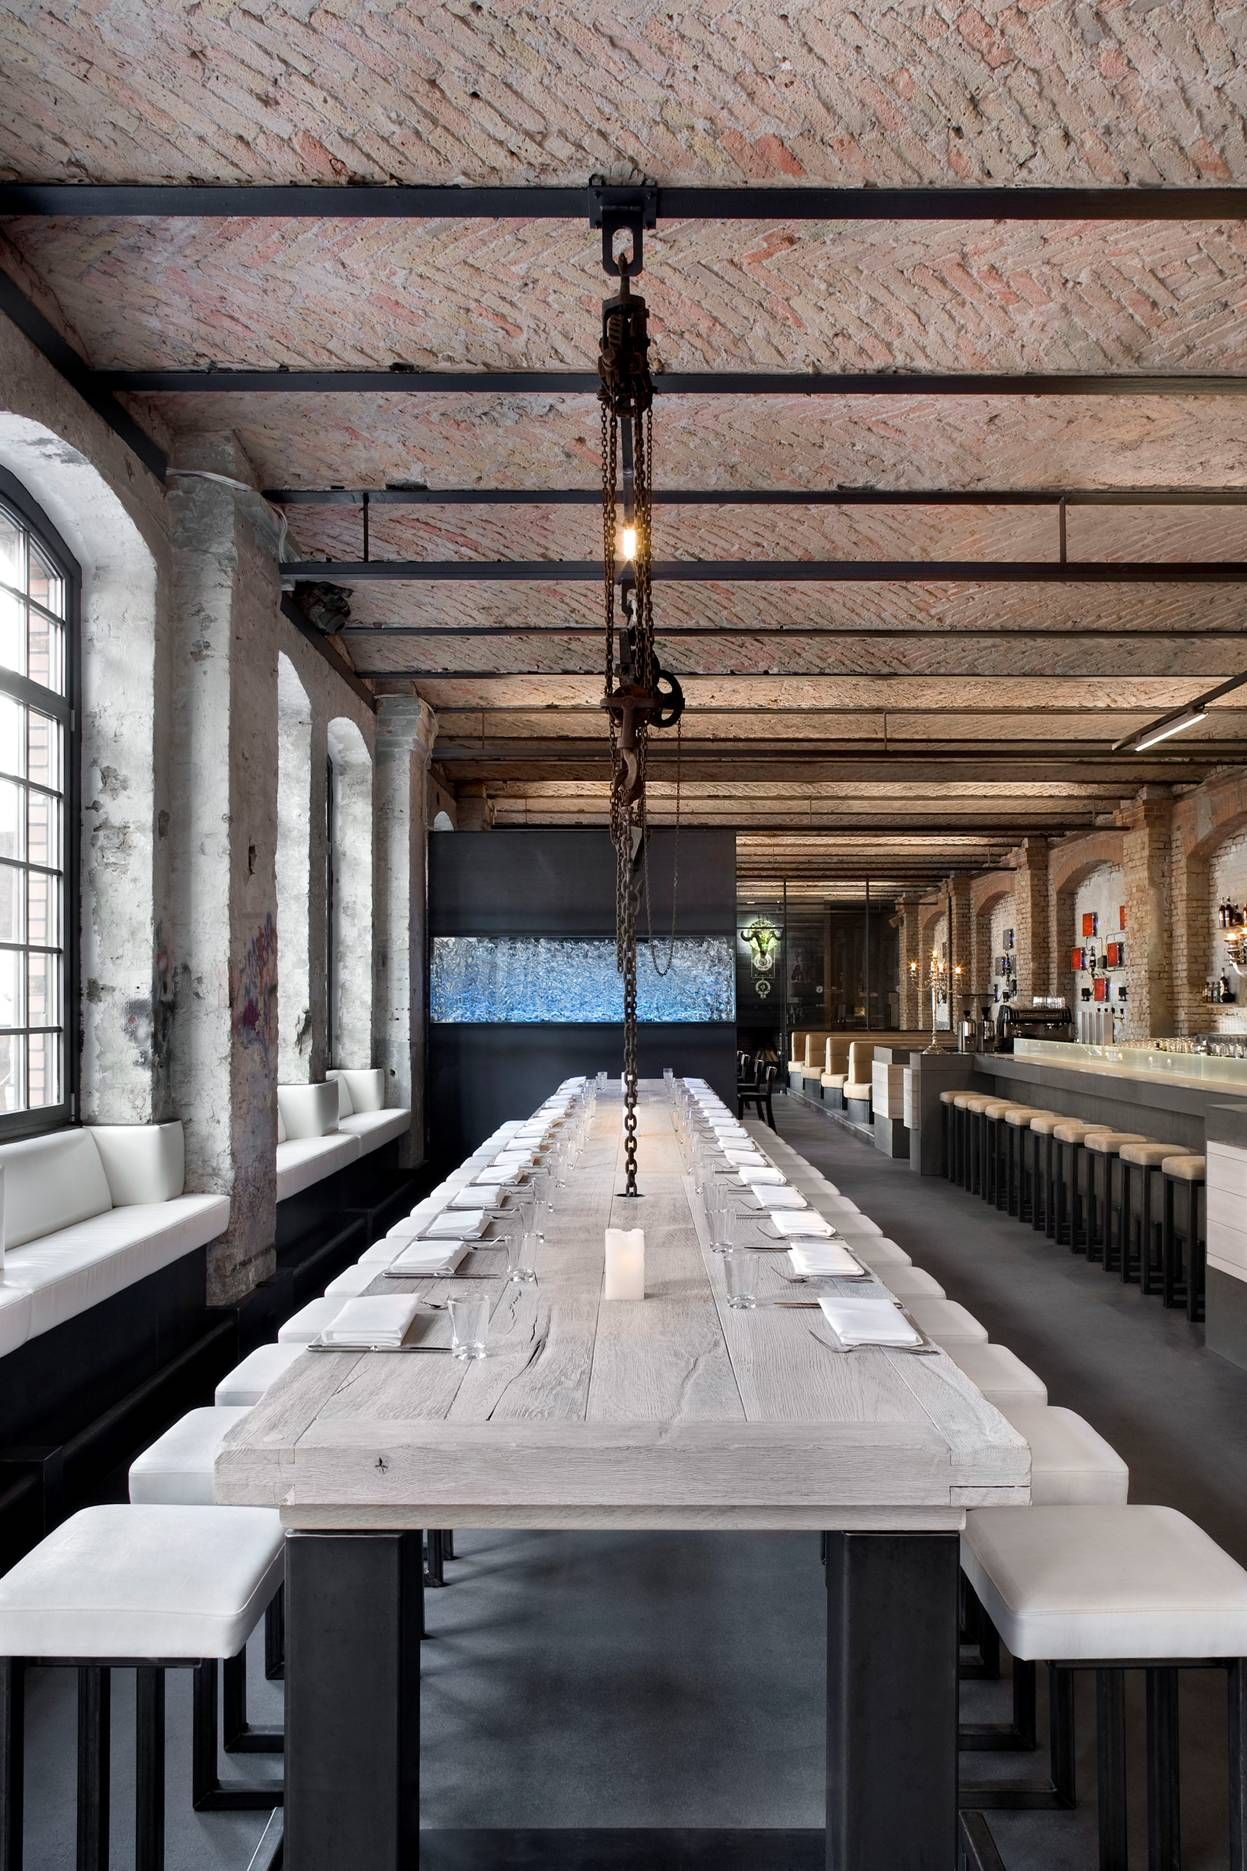 sage #restaurant, #berlin. the ceiling has an industrial style